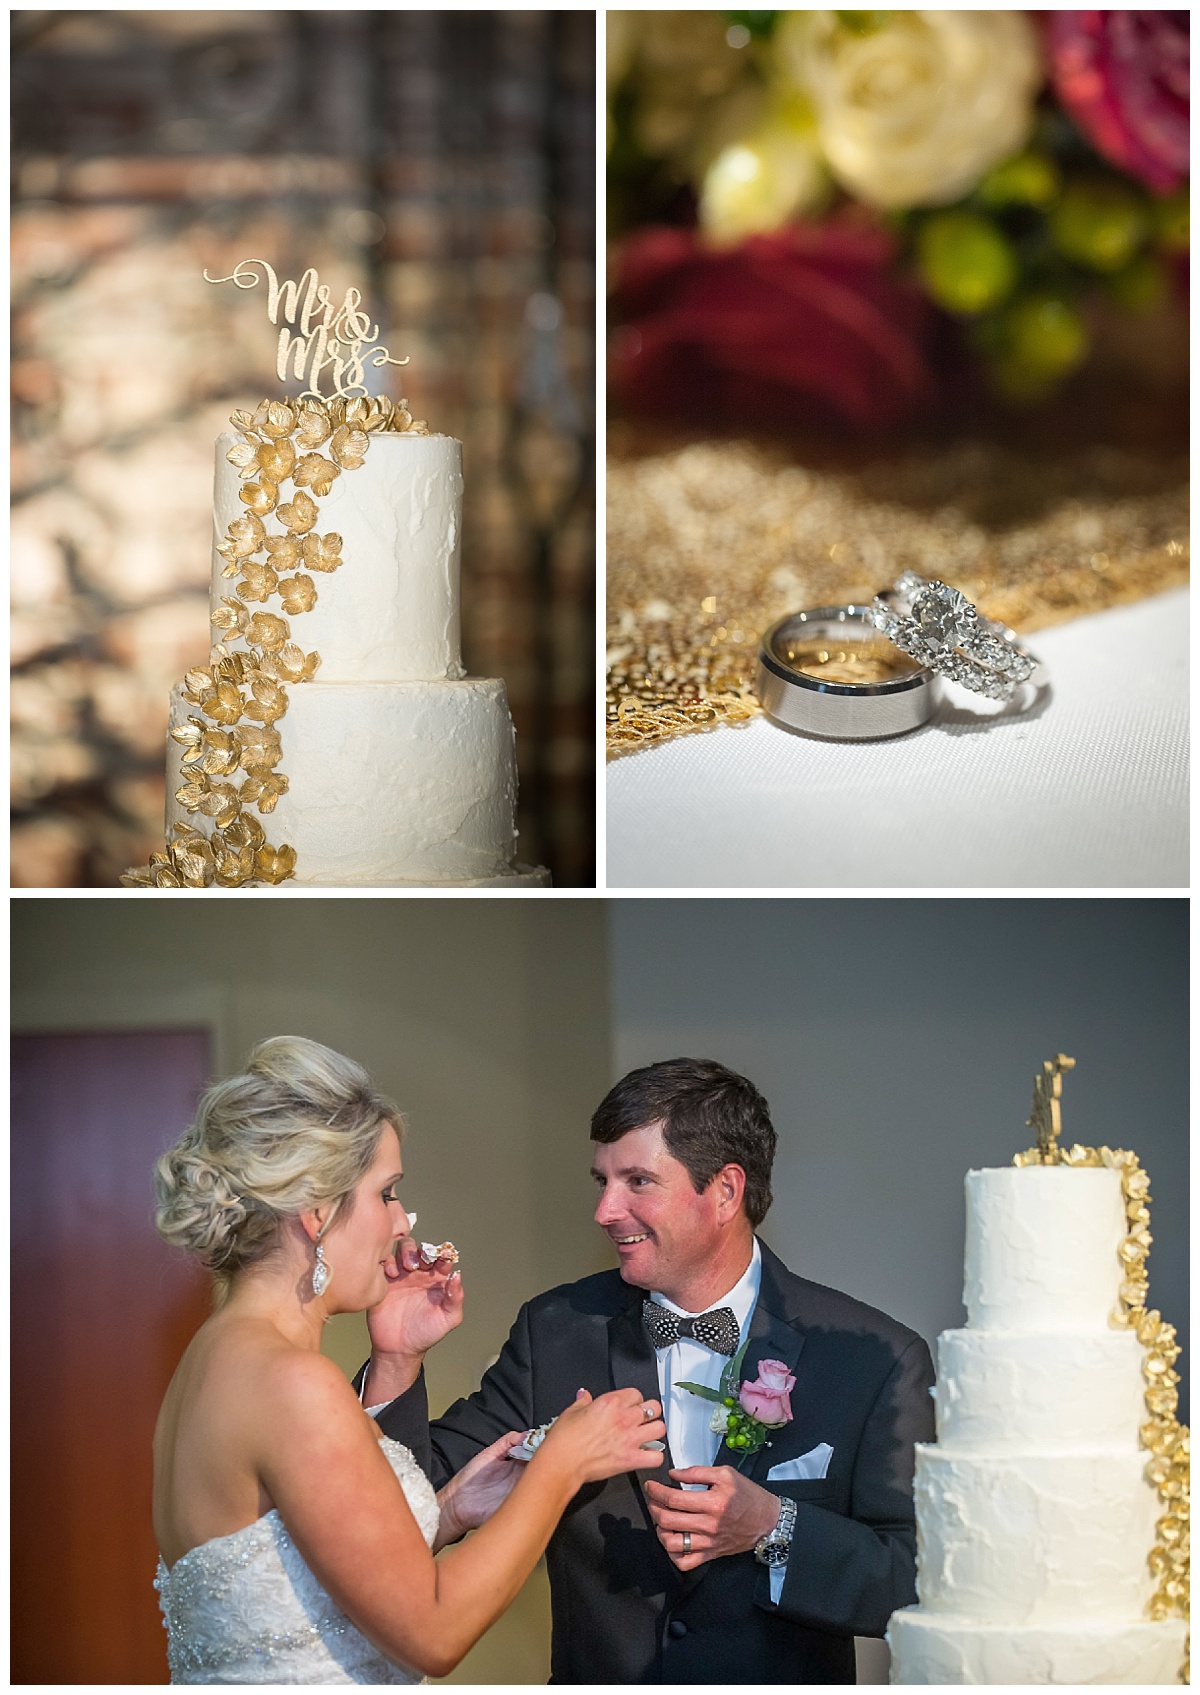 Cake cutting and wedding bands